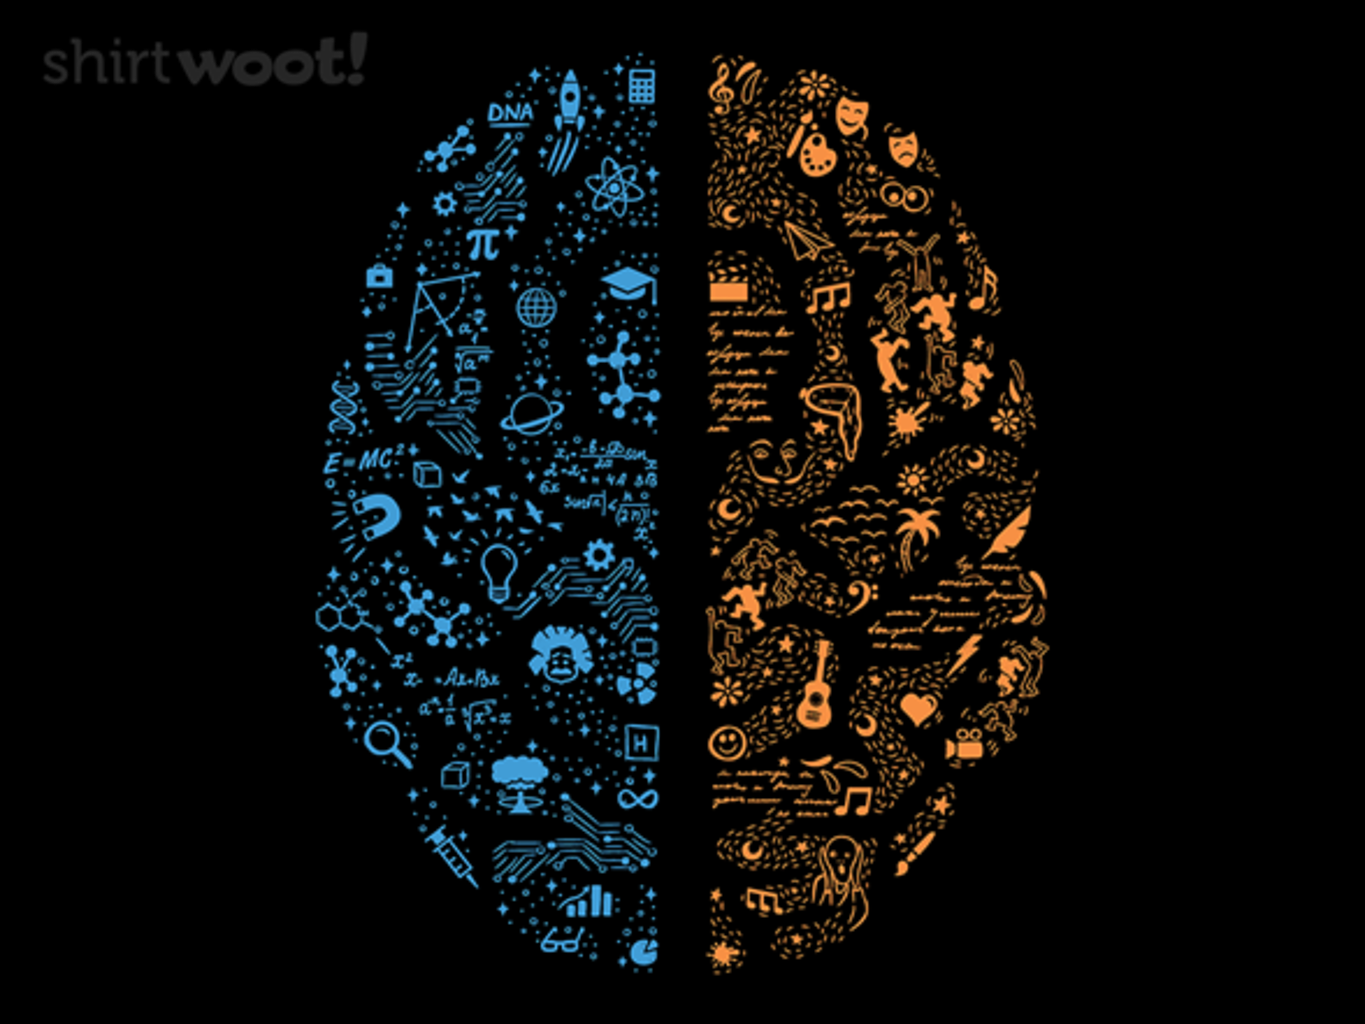 Woot!: Where is My Mind?